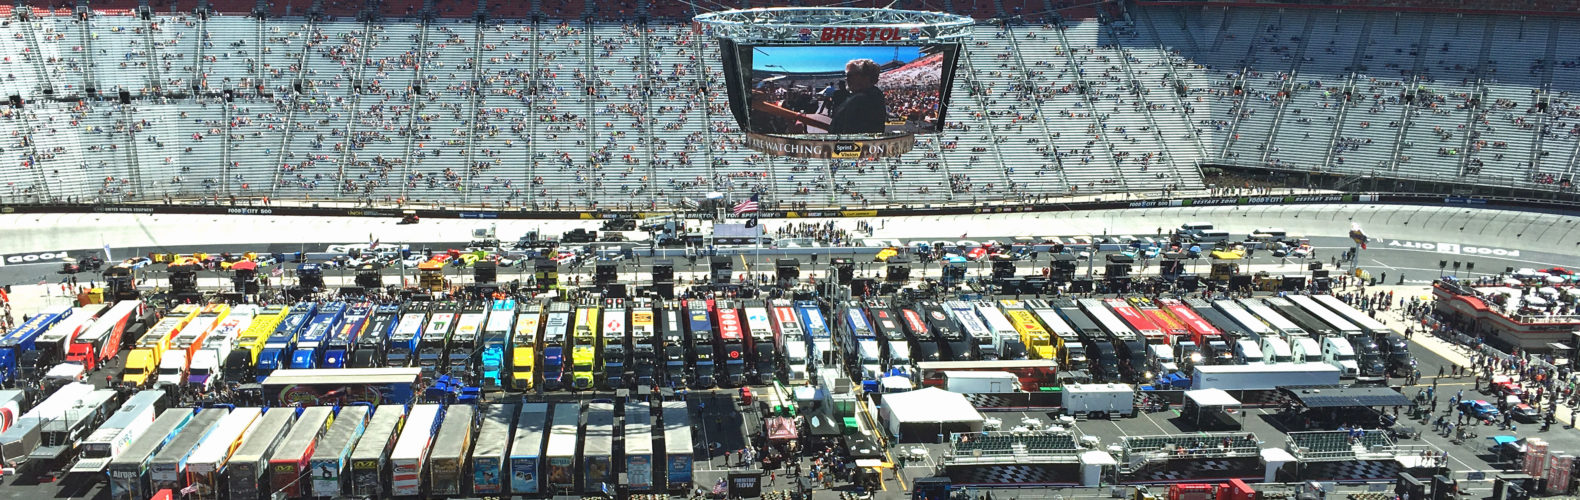 Toura; digiLED; World's largest LED screen; World's largest; Colossus TV; Bristol Motor Speedway; pixels